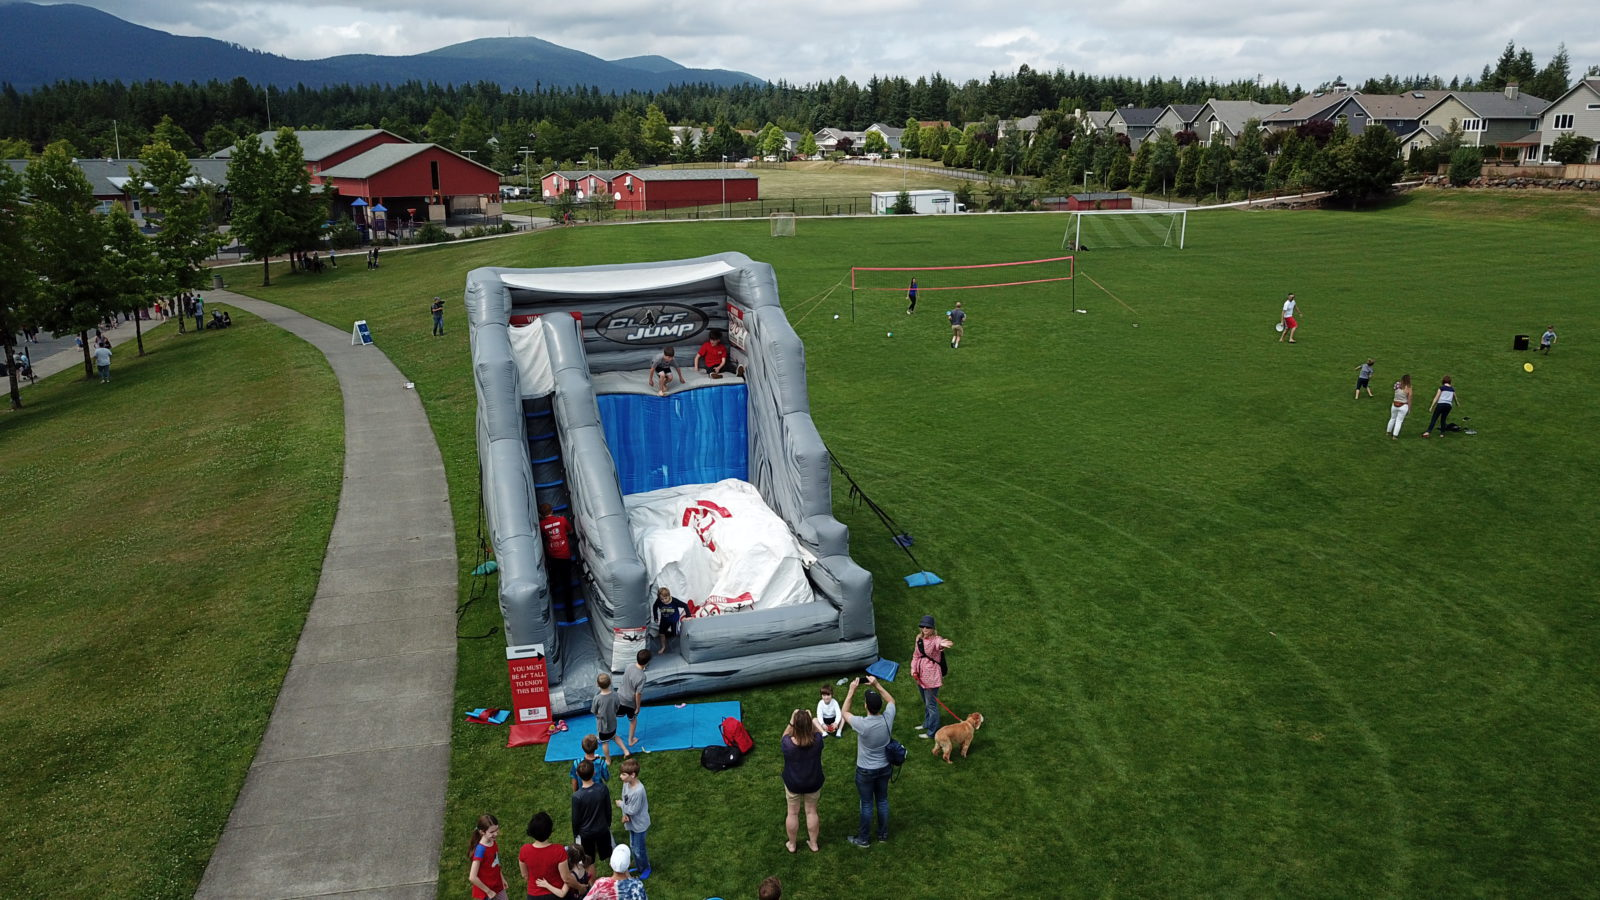 Cliff Jump Inflatable Game Rental